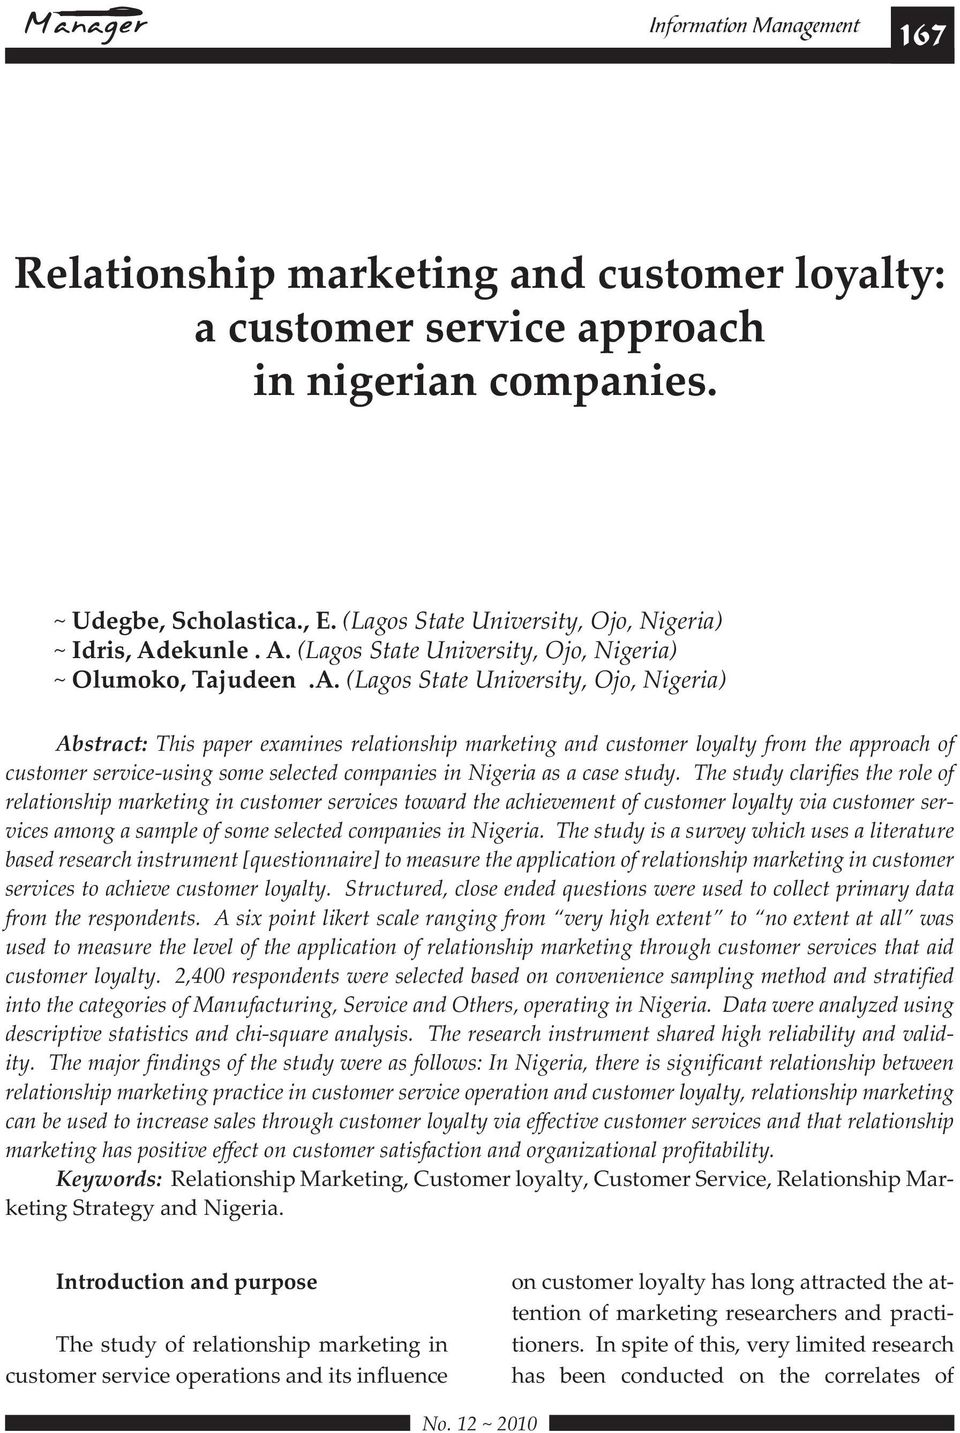 Abstract: Keywords: Relationship Marketing, Customer loyalty, Customer Service, Relationship Marketing Strategy and